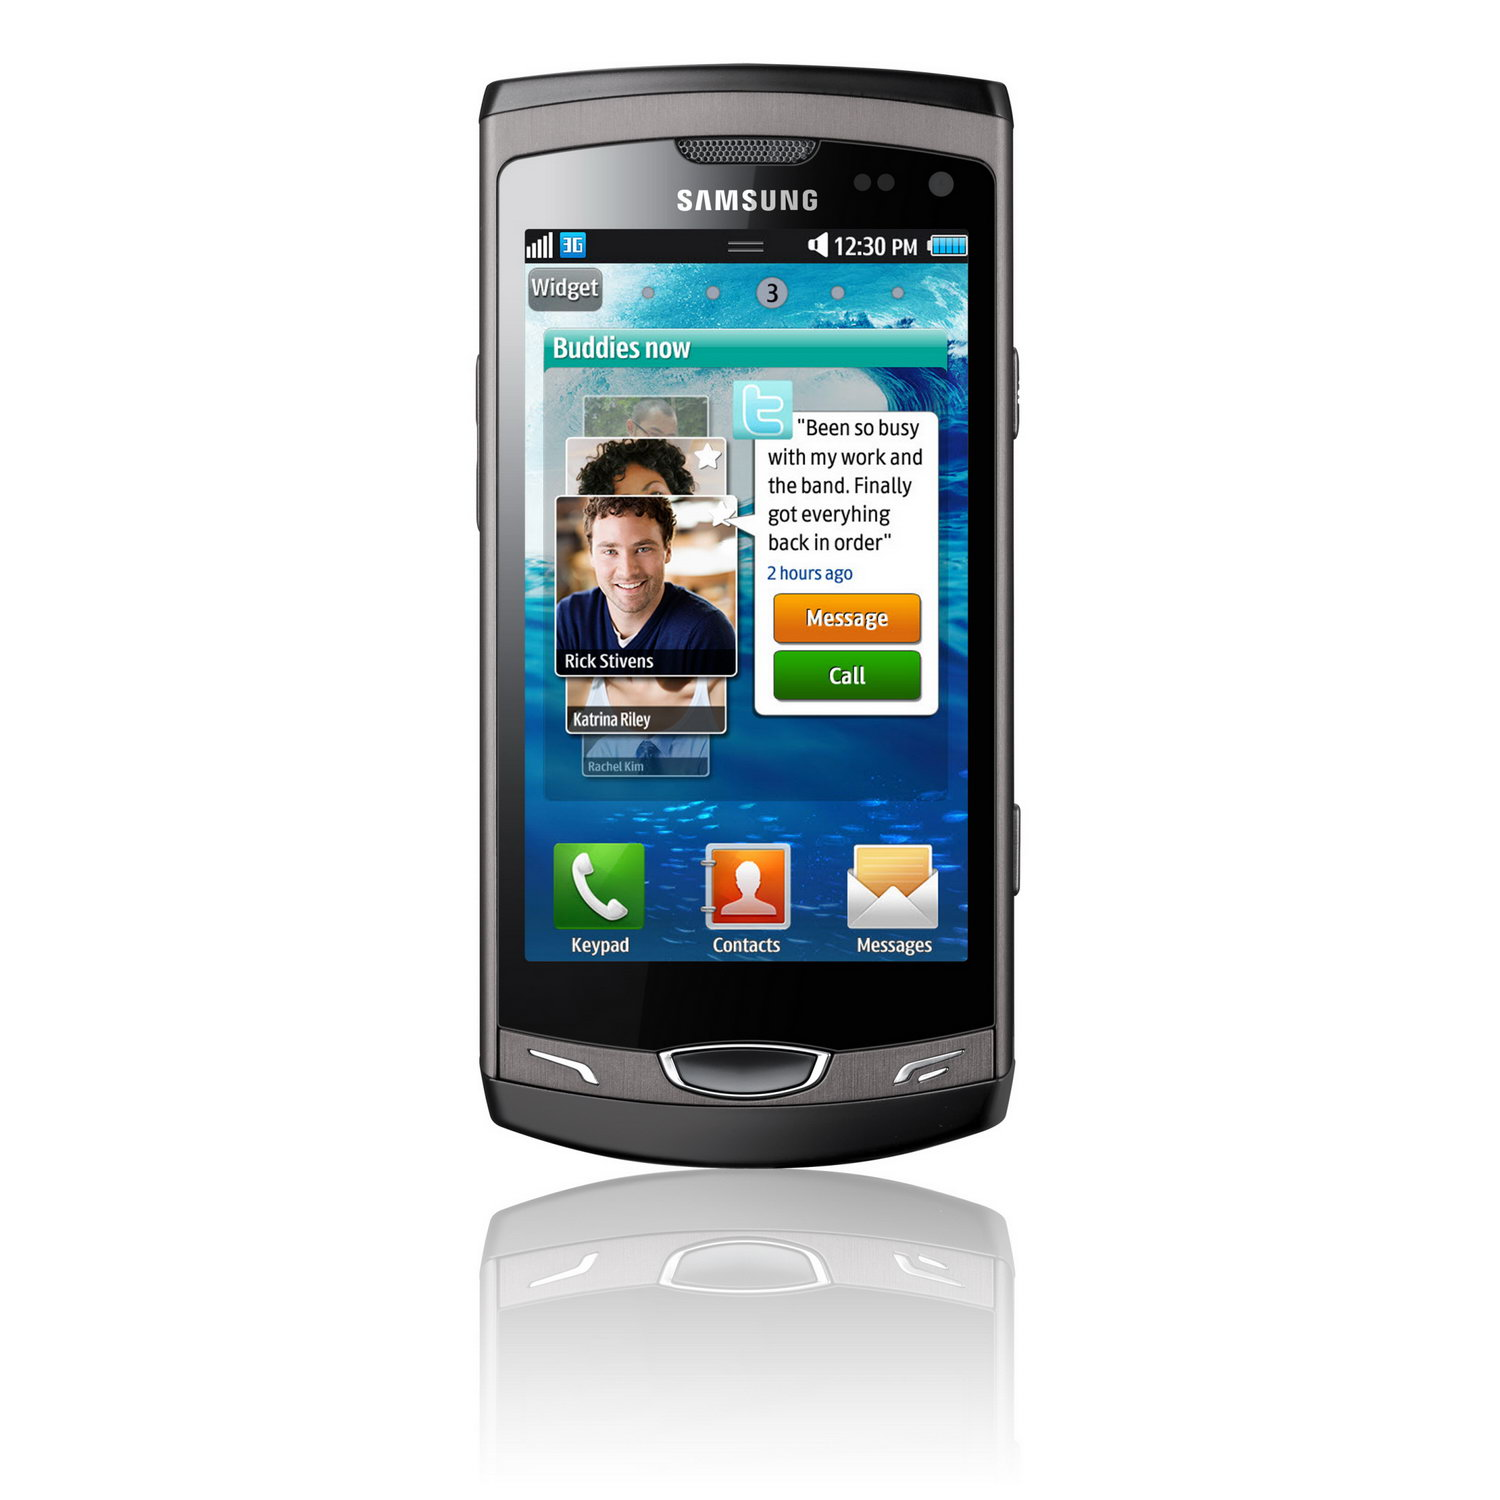 mobile phone and samsung Find samsung mobiles in india with best prices and deals from all online and local sources list of 132 samsung phones currently on sale in india you can also see latest and upcoming phones tracked by pricebaba with detailed specifications and hd pictures.